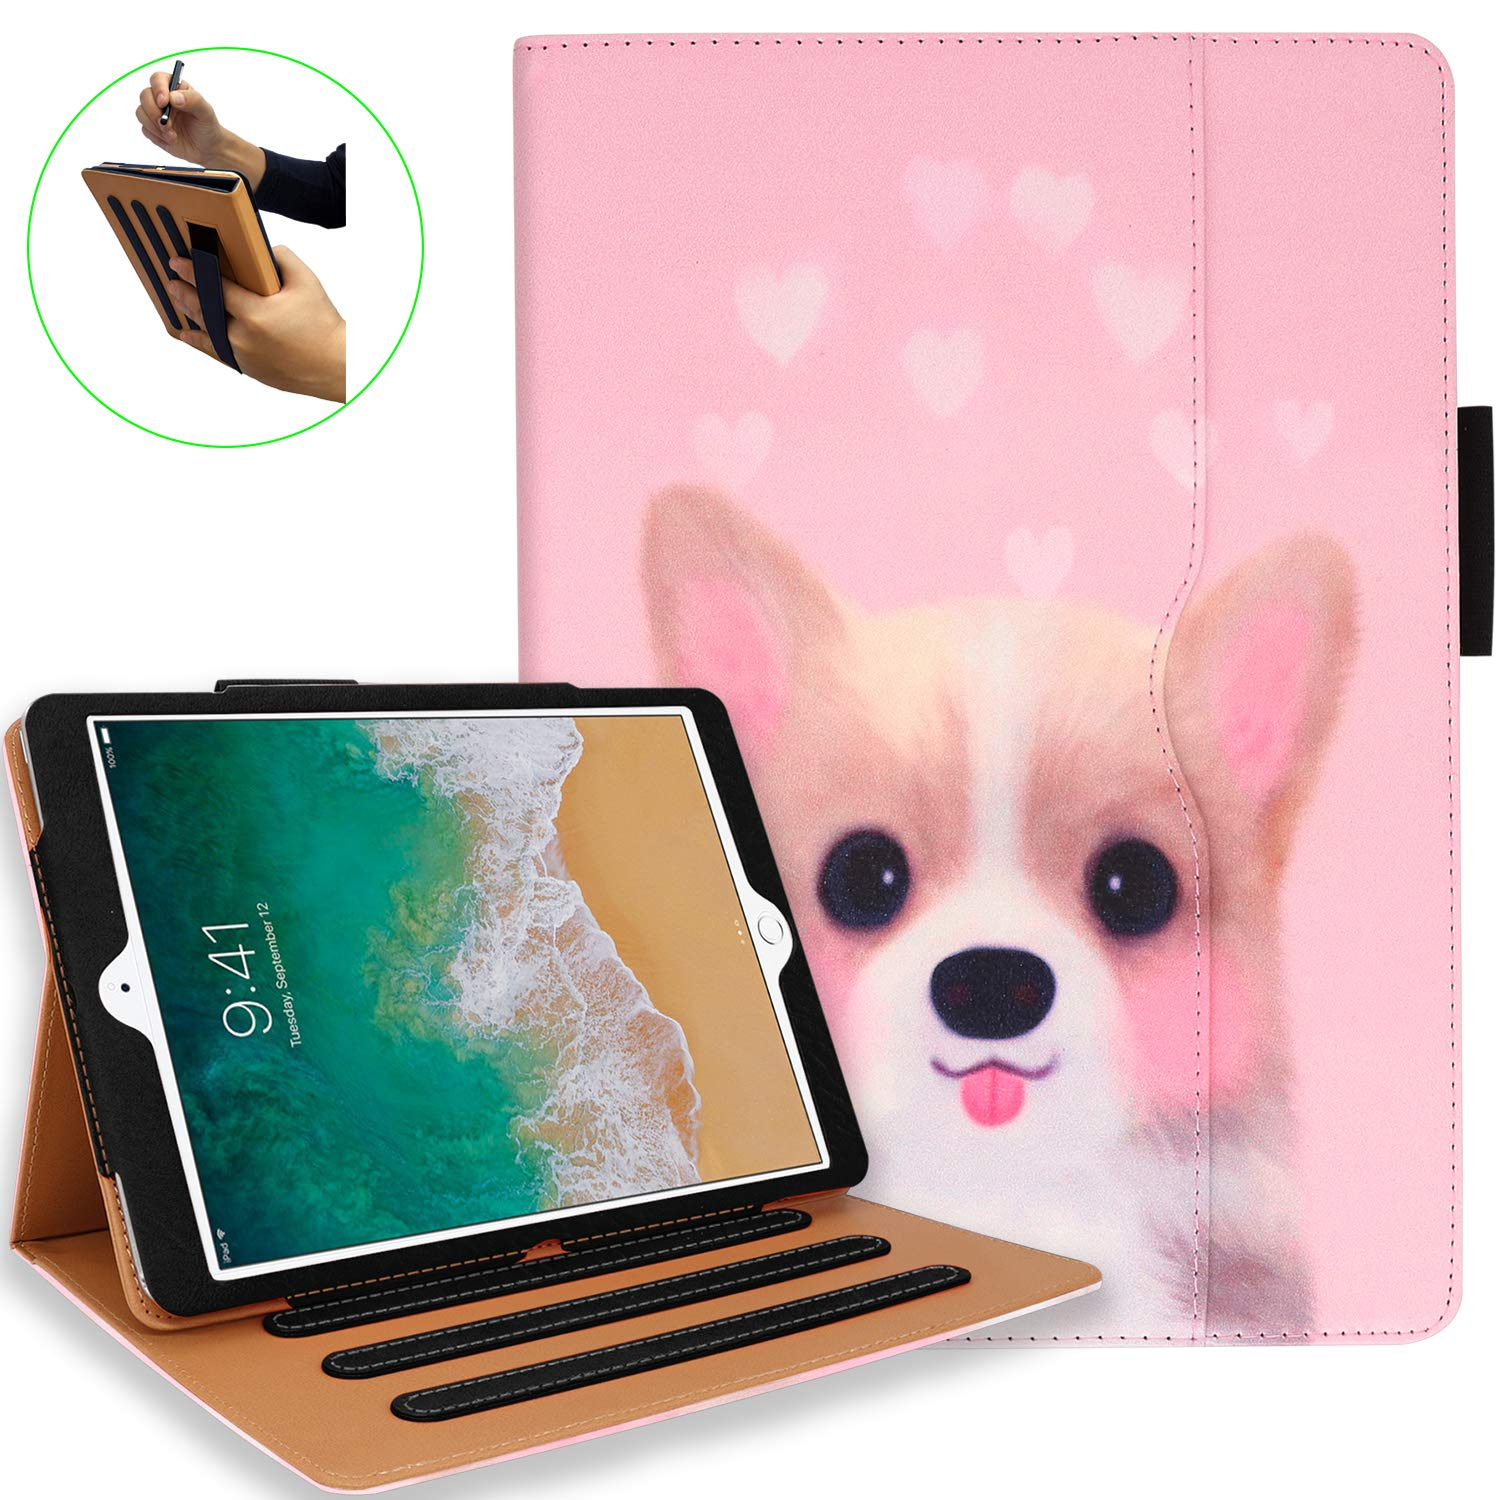 iPad 7th Generation Case, iPad 10.2 Case with Pencil Holder - Multi-Angle Stand, Hand Strap, Auto Sleep/Wake for iPad 7th Generation, iPad 10.2 Case(Lovely Dog)